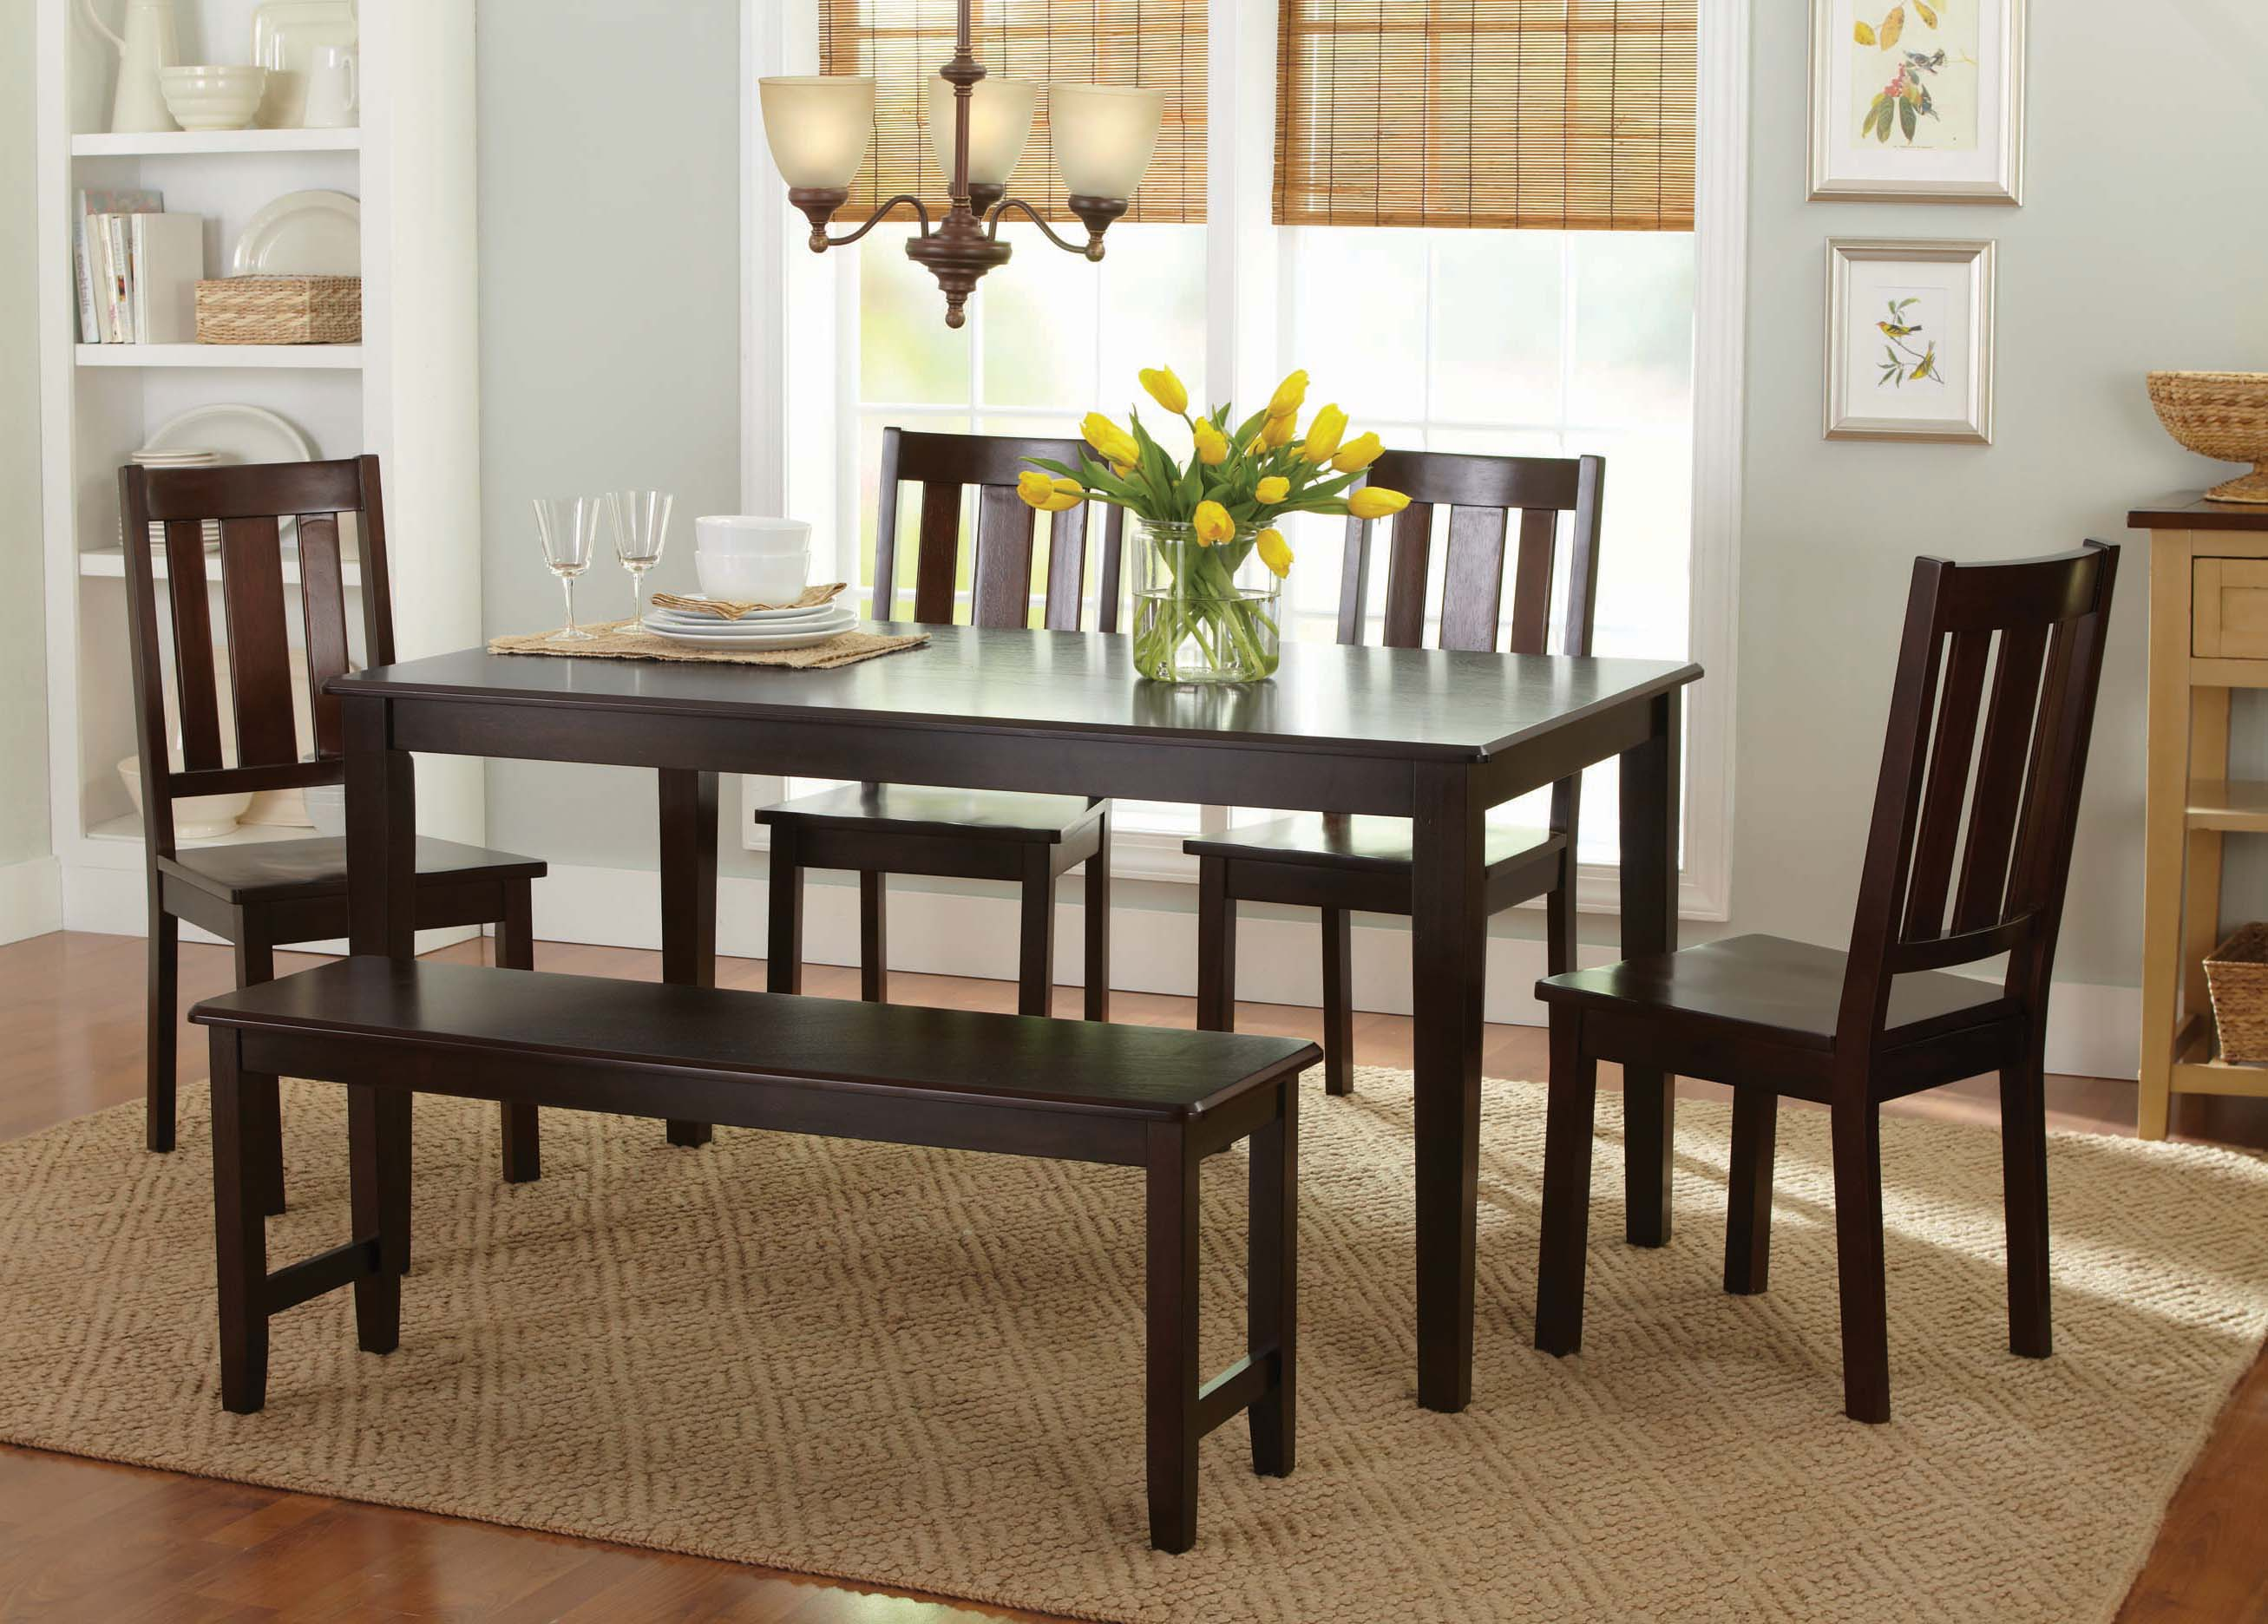 Better Homes And Gardens Bankston Dining Bench, Mocha   Walmart.com